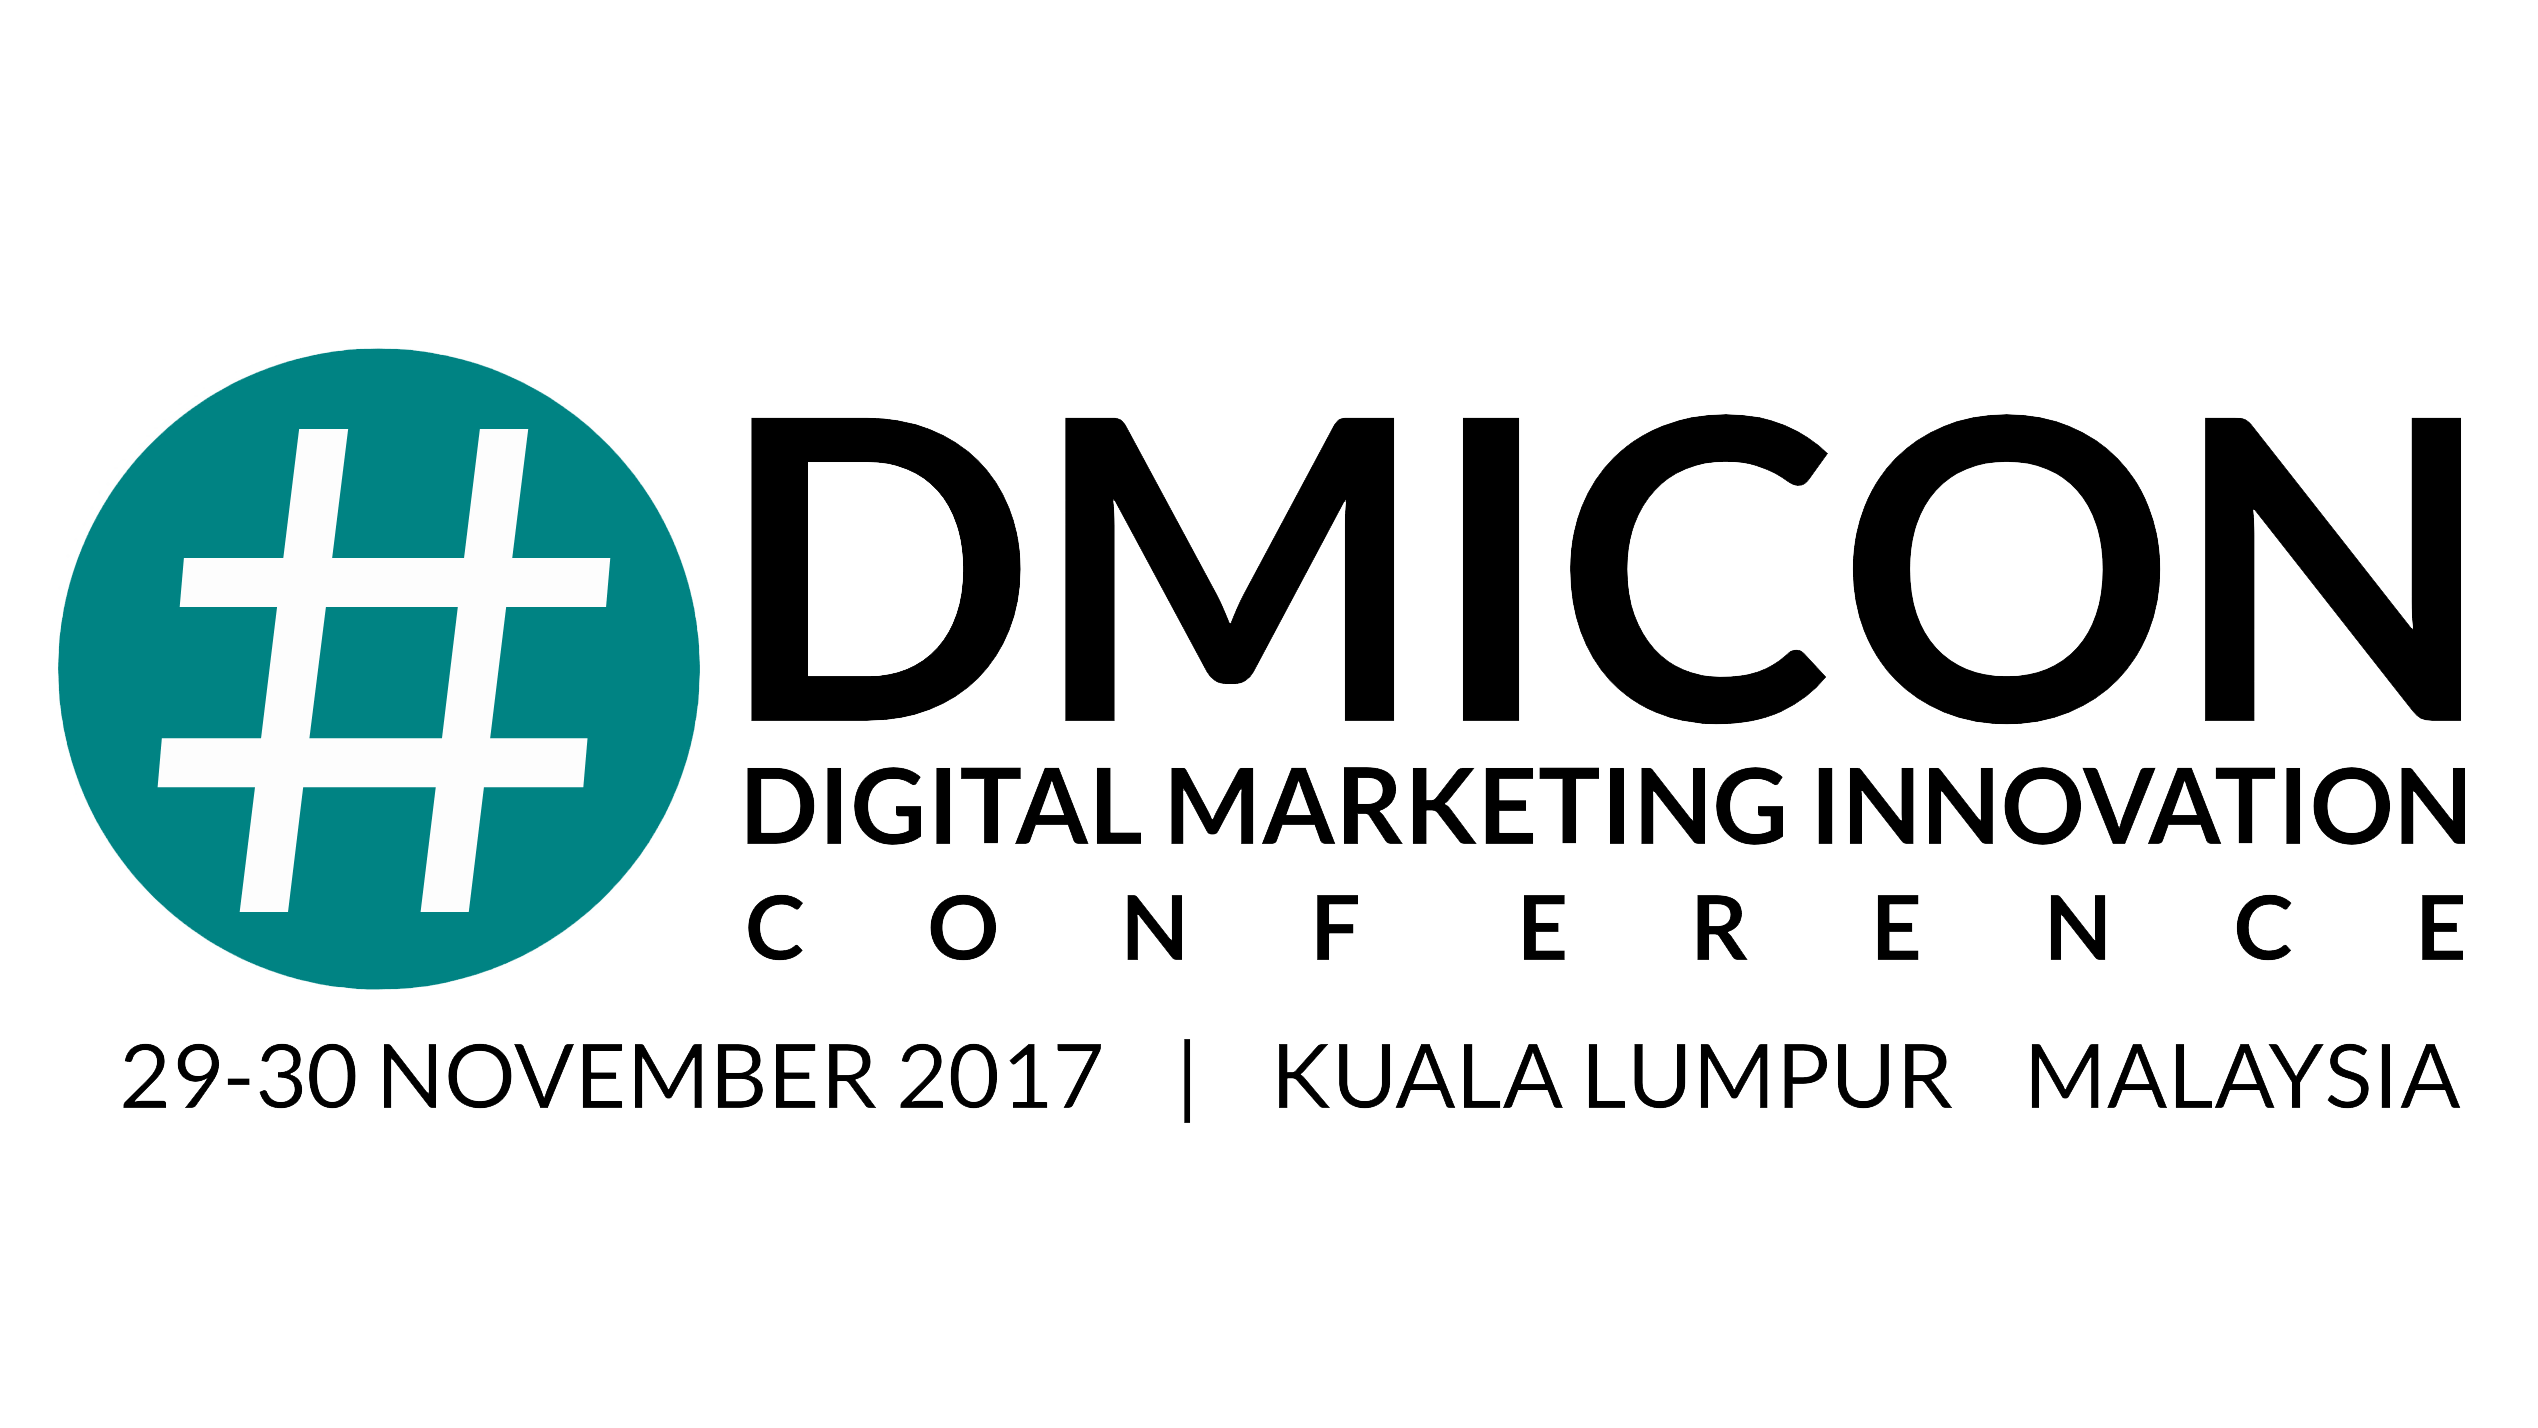 Digital Marketing Innovation Conference DMICON 2017 Logo